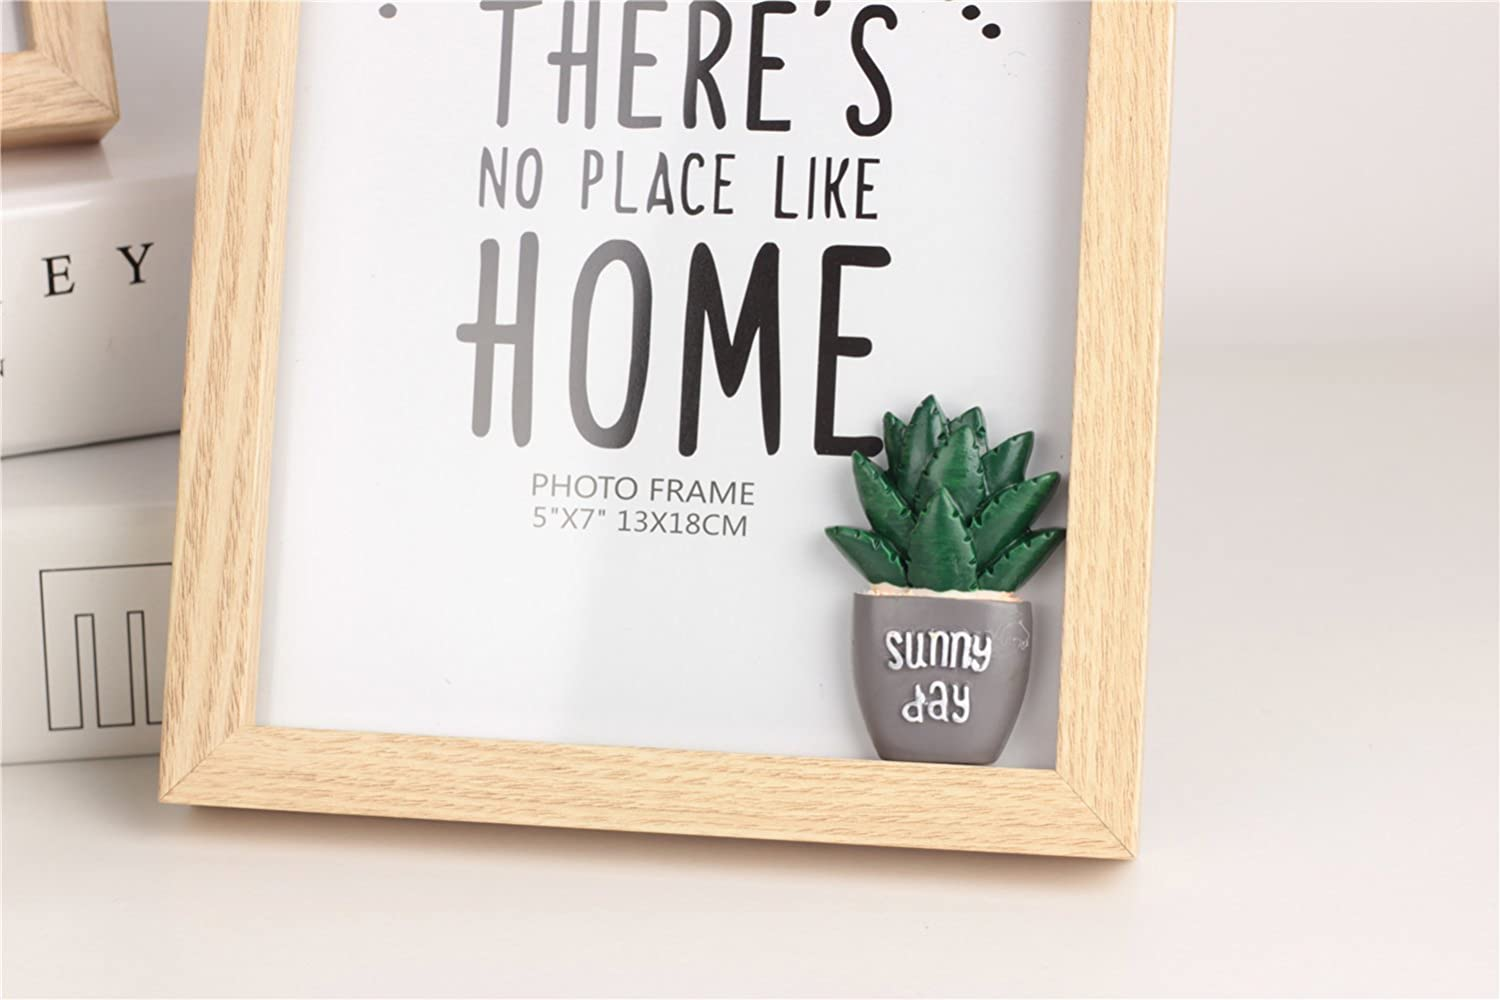 Home/&Me Wood Picture Photo Frame 6 x 4 Inches